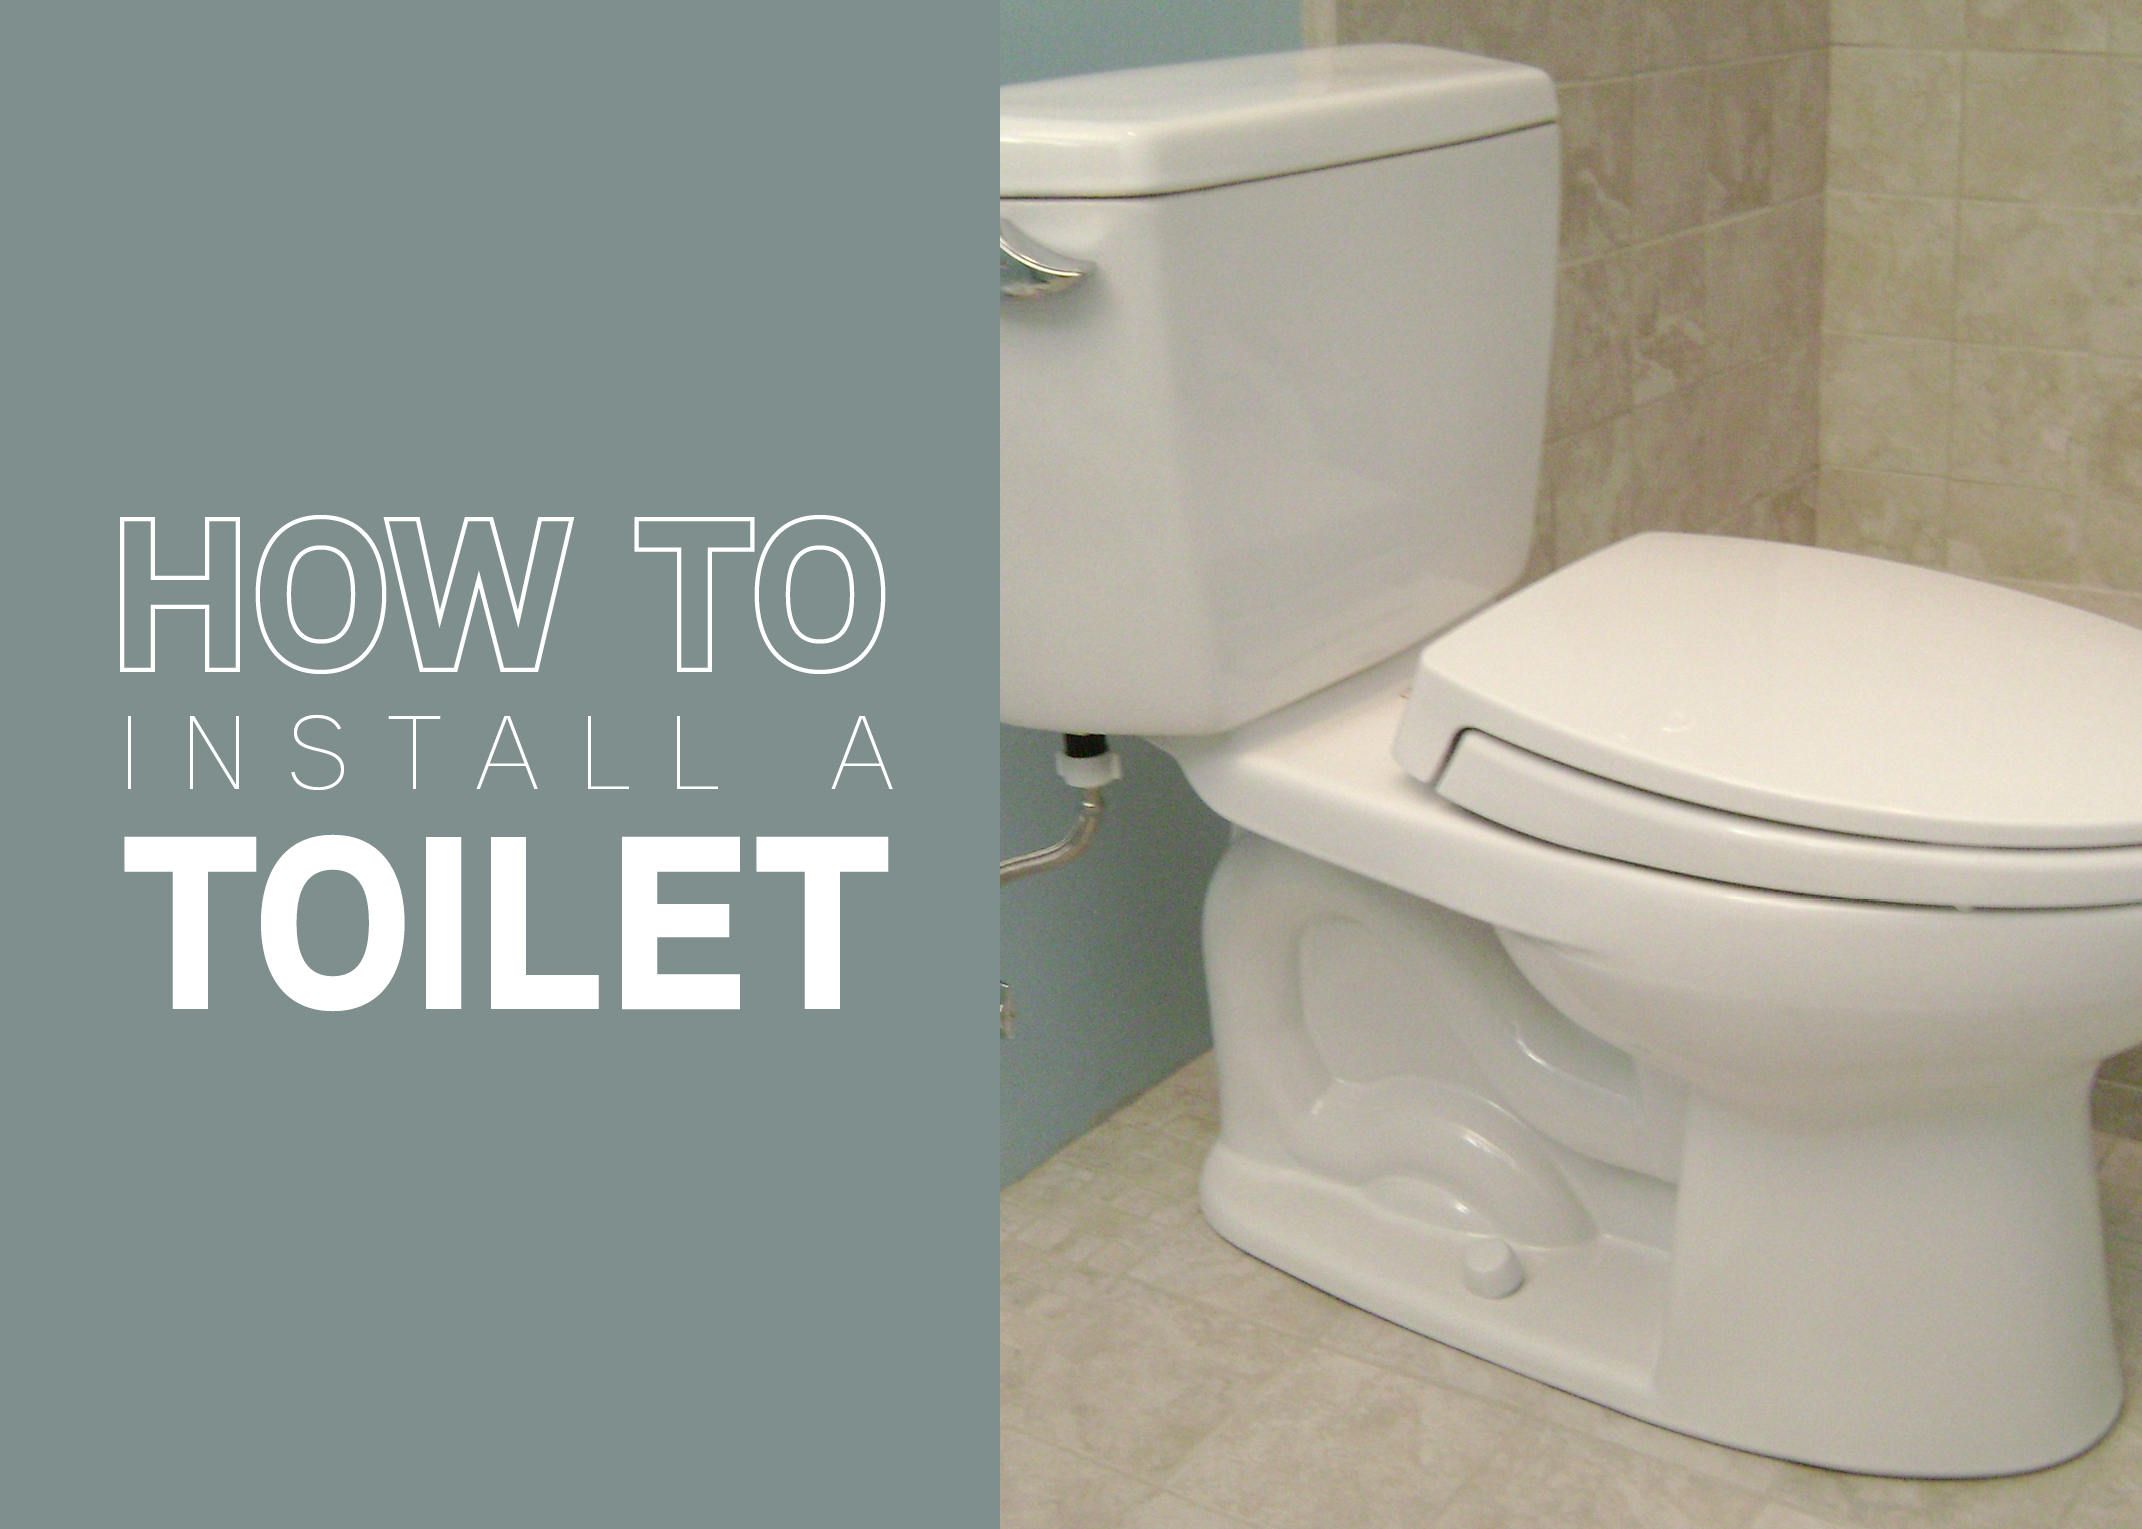 How To Install A Toilet Mr Rooter